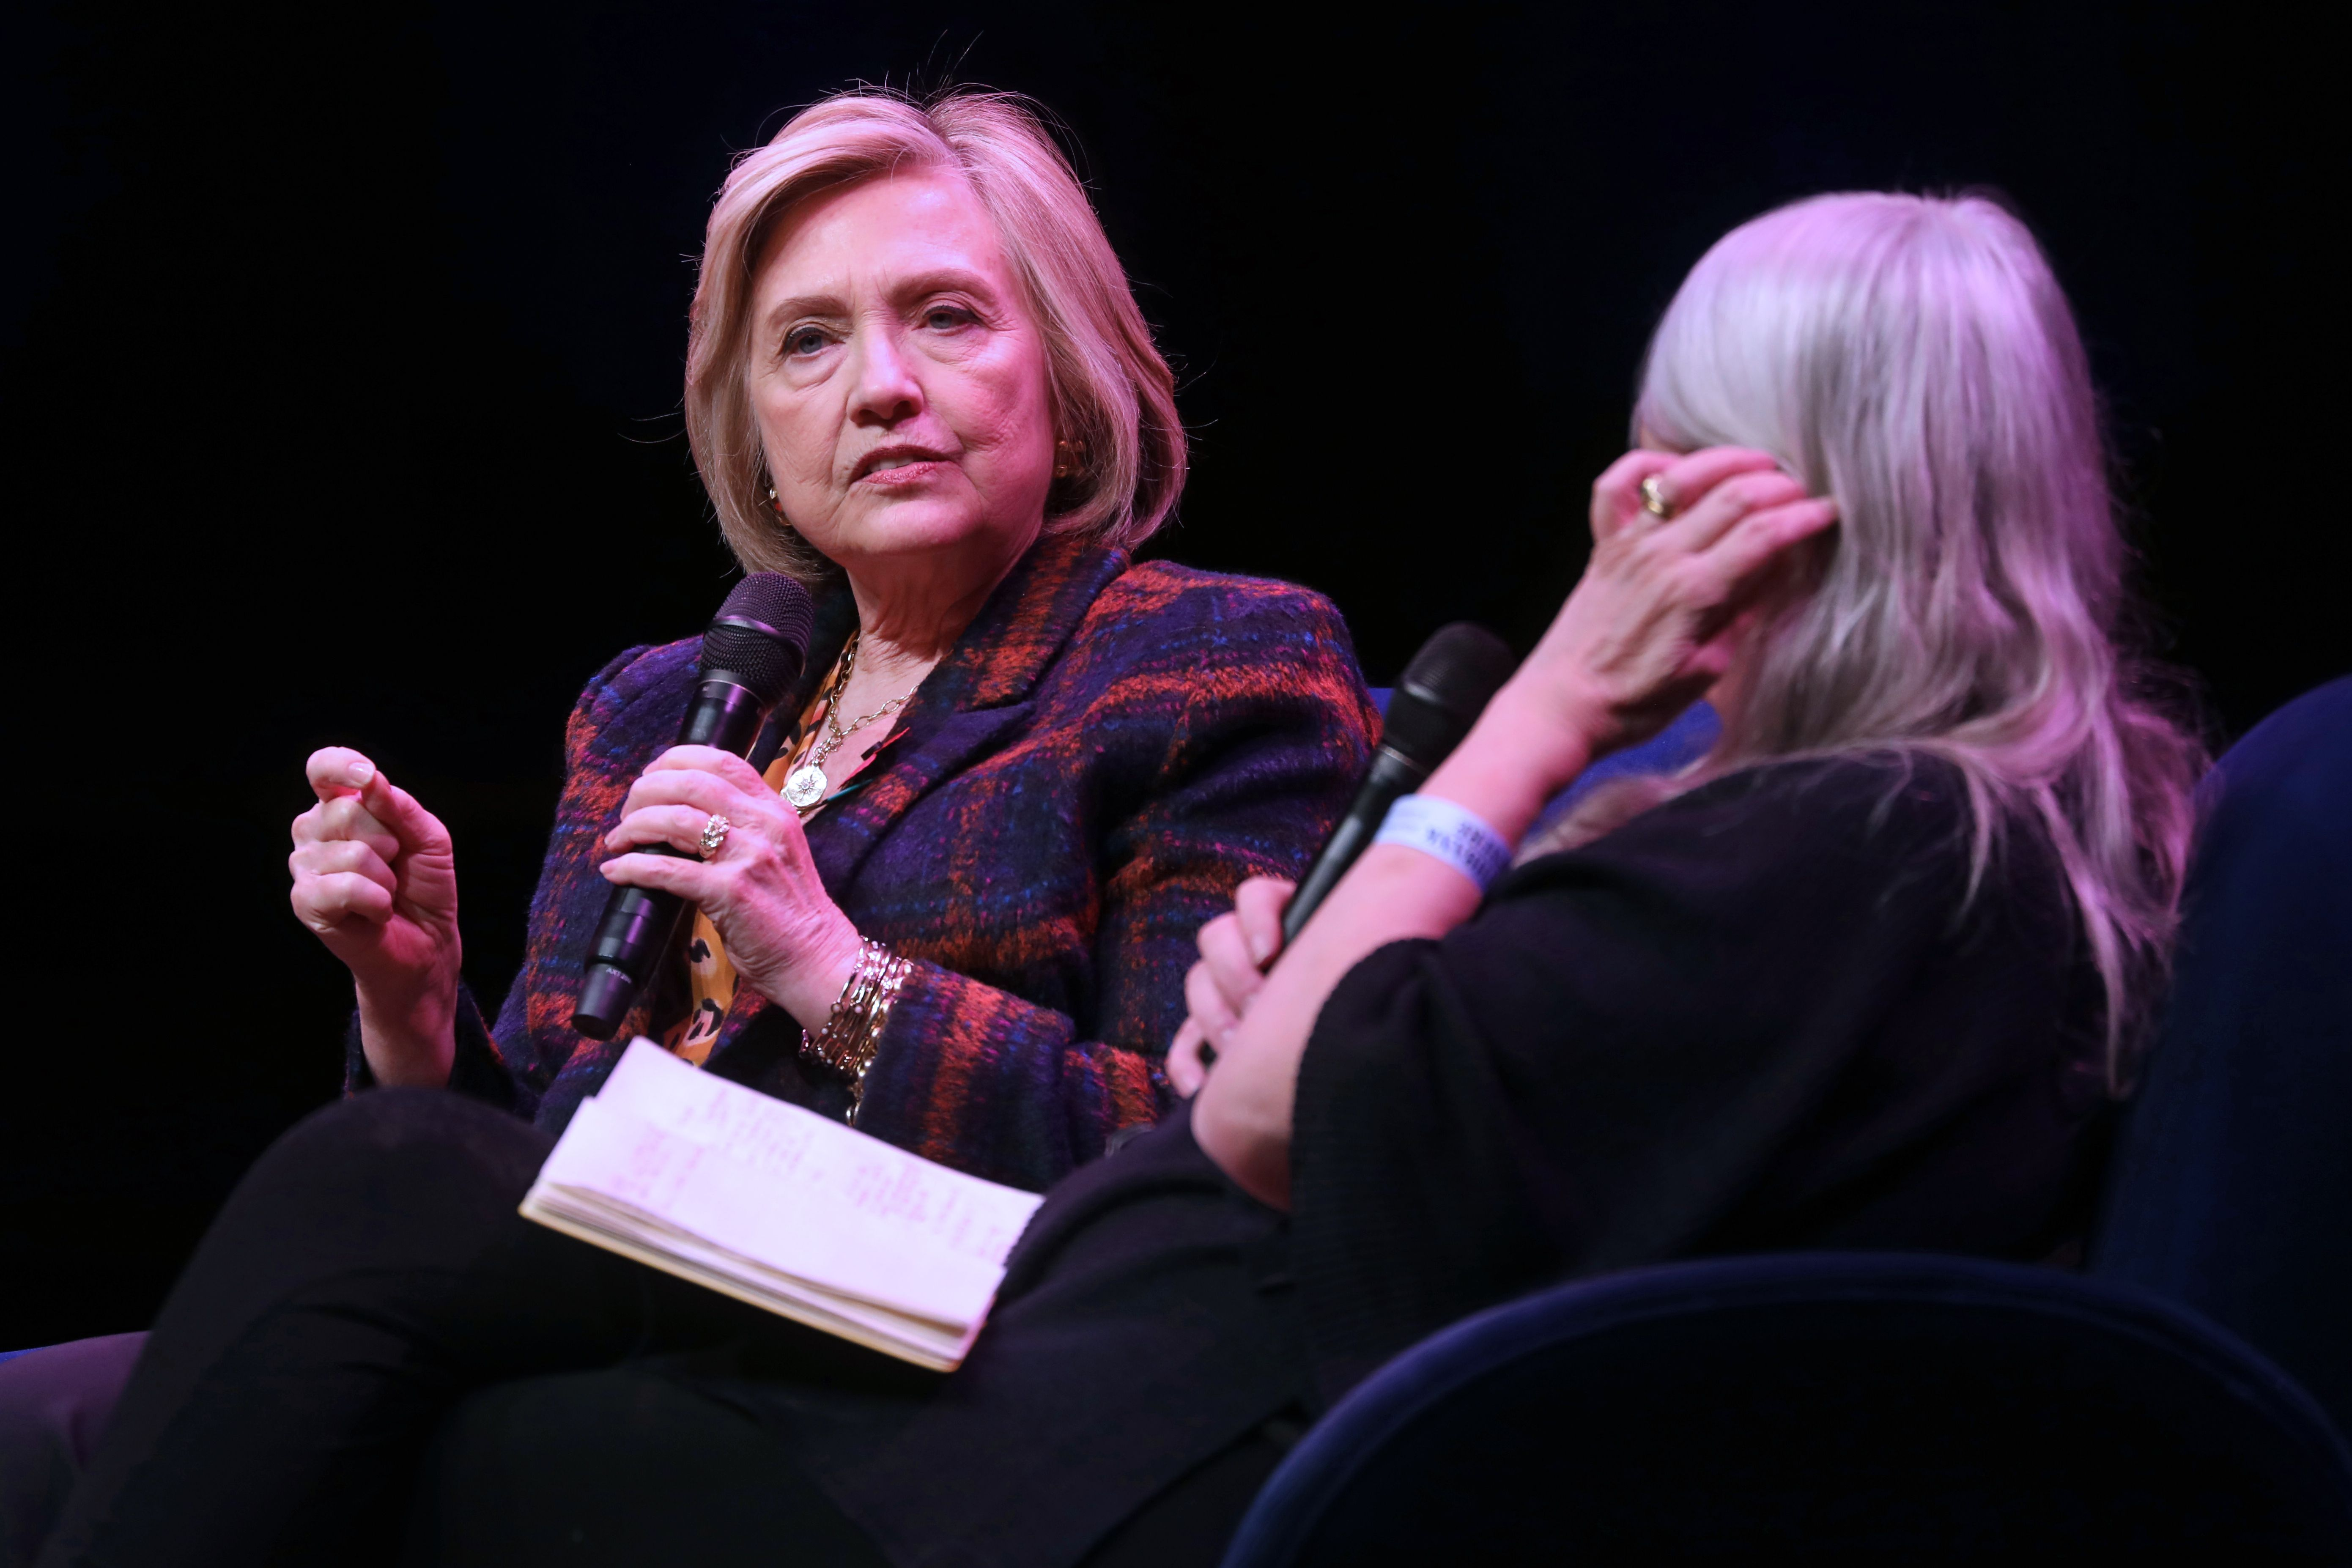 Hillary Clinton Says She's 'Deluged' With Requests to Run in 2020